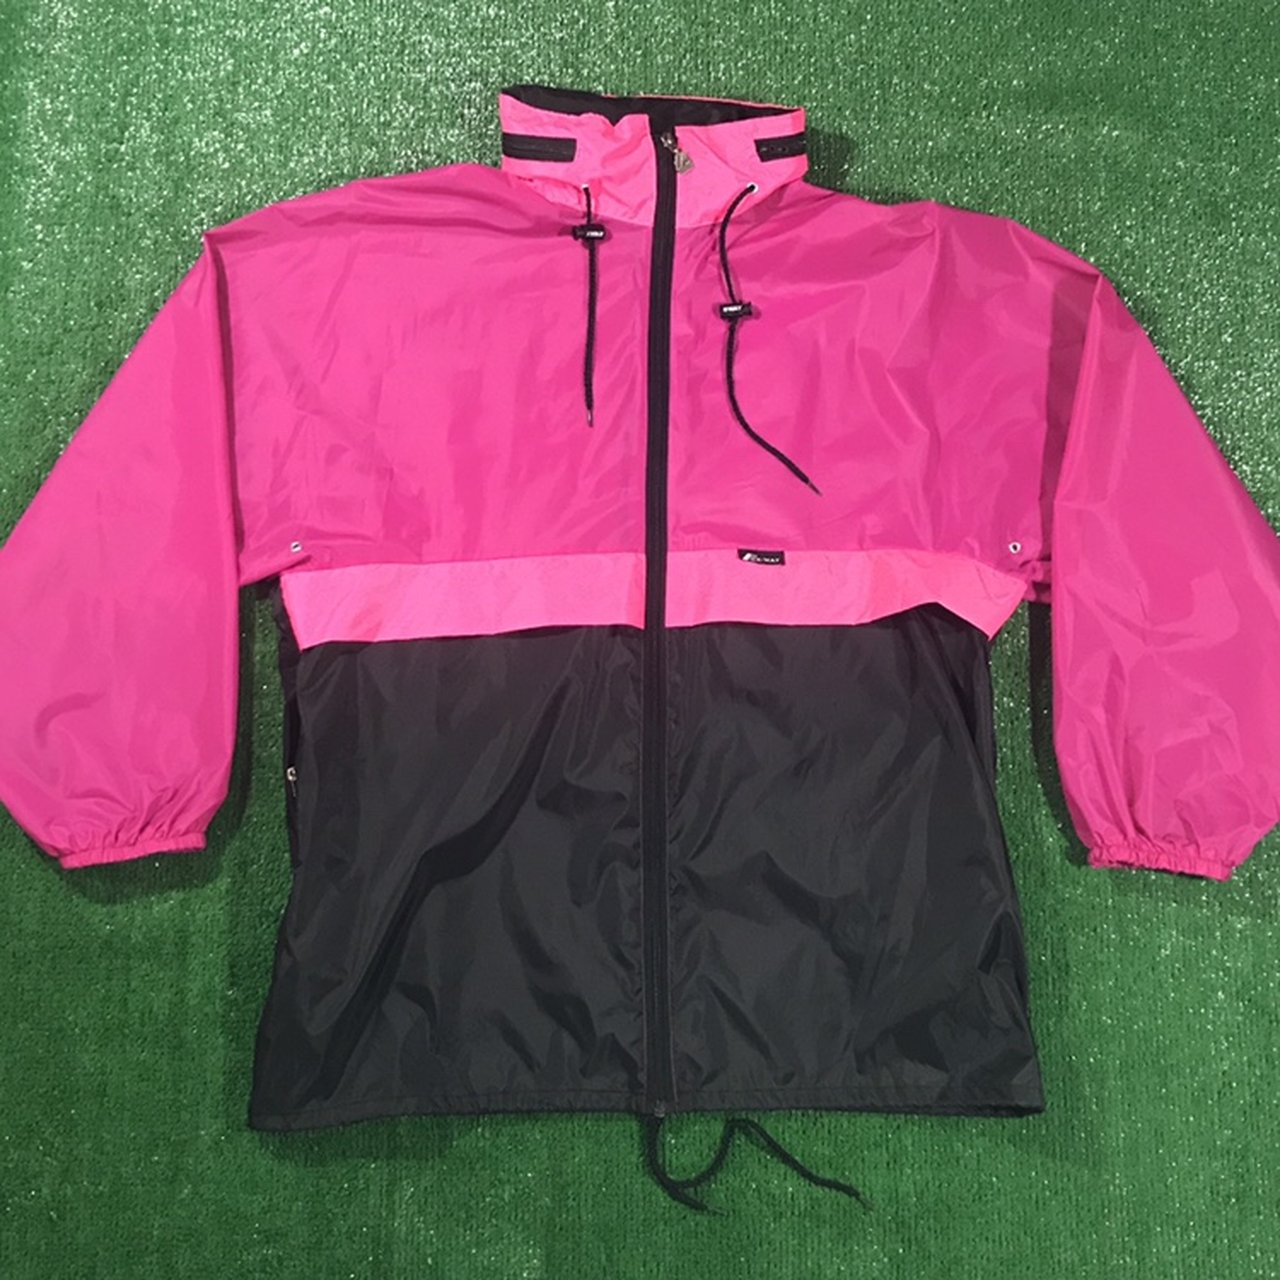 f82f34c7a647 Vintage 90s K-Way Colorblock Festival Rain Jacket. Item is a - Depop